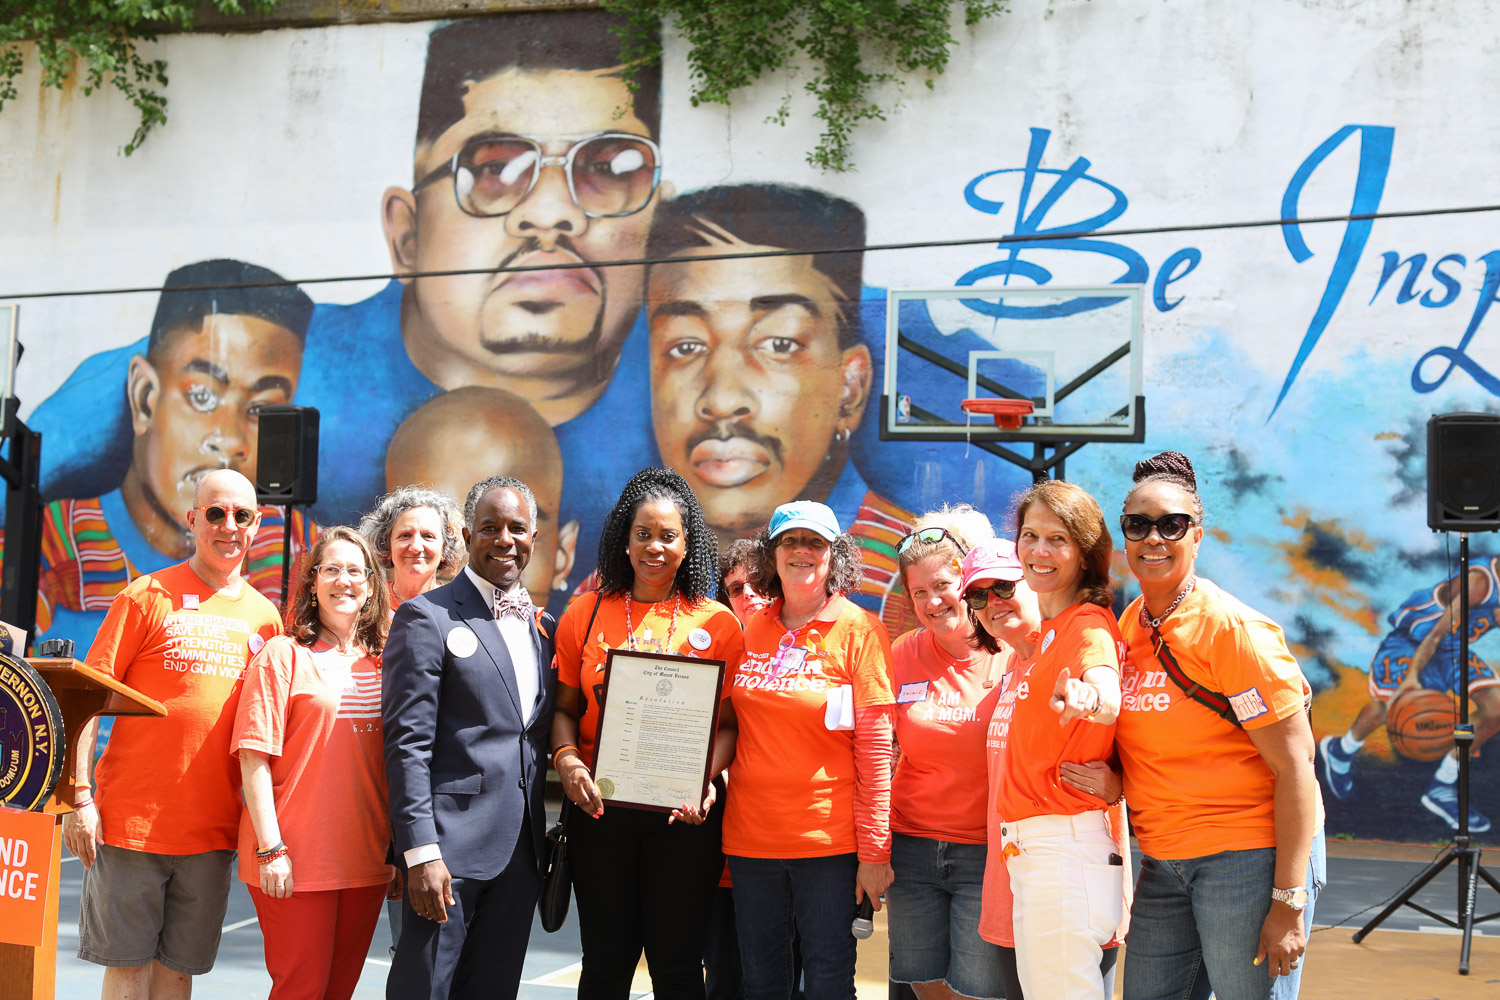 City Council President Andre Wallace Presents The Resolution Certificate To Nadine McKenzie, Amy Stern, And The Moms Demand Action Team at The Gun Violence Awareness Week at Heavy D Memorial Park in Mount Vernon June 9, 2019. Photography by Tyrone Z. McCants / Zire Photography